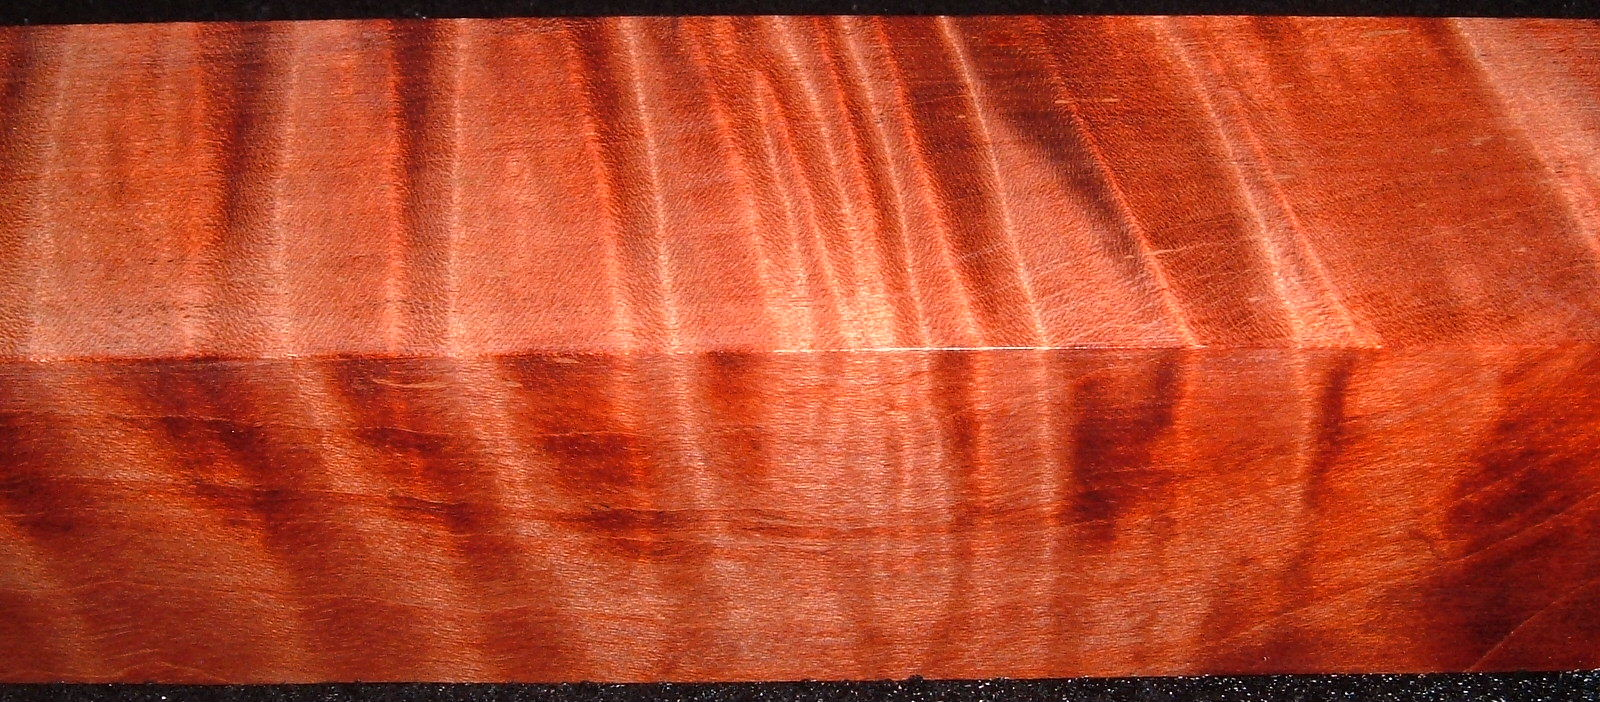 Z155, 1-7/16x1-7/16x6-1/4, Orange, Curly Tiger Maple Dyed Stabilized, wood turning block